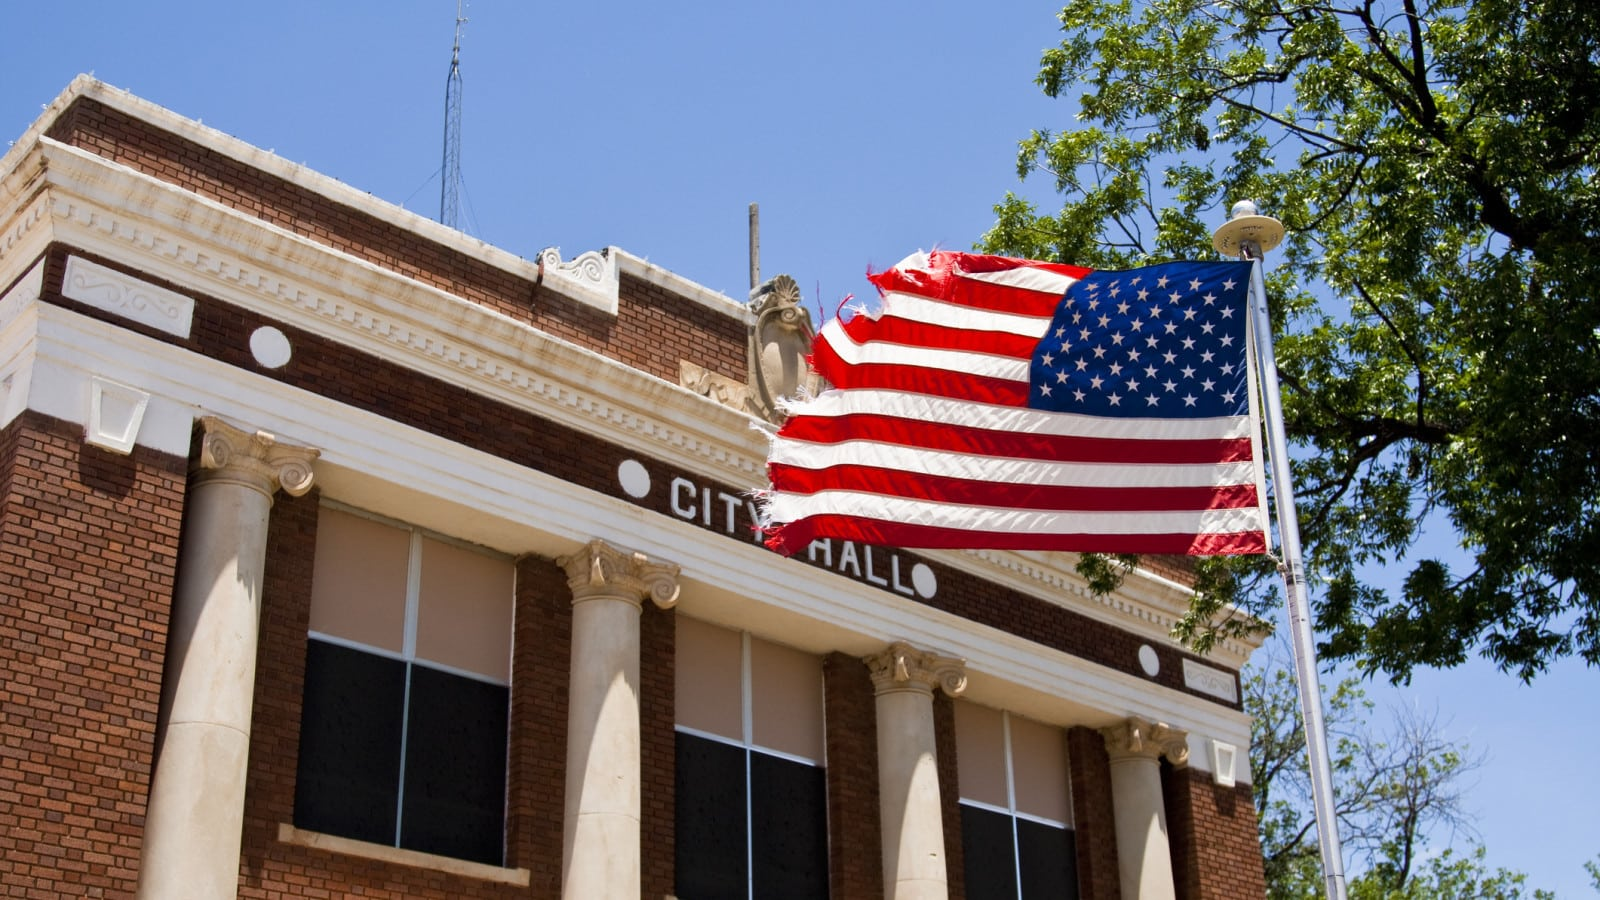 City Hall And American Flag Stock Photo